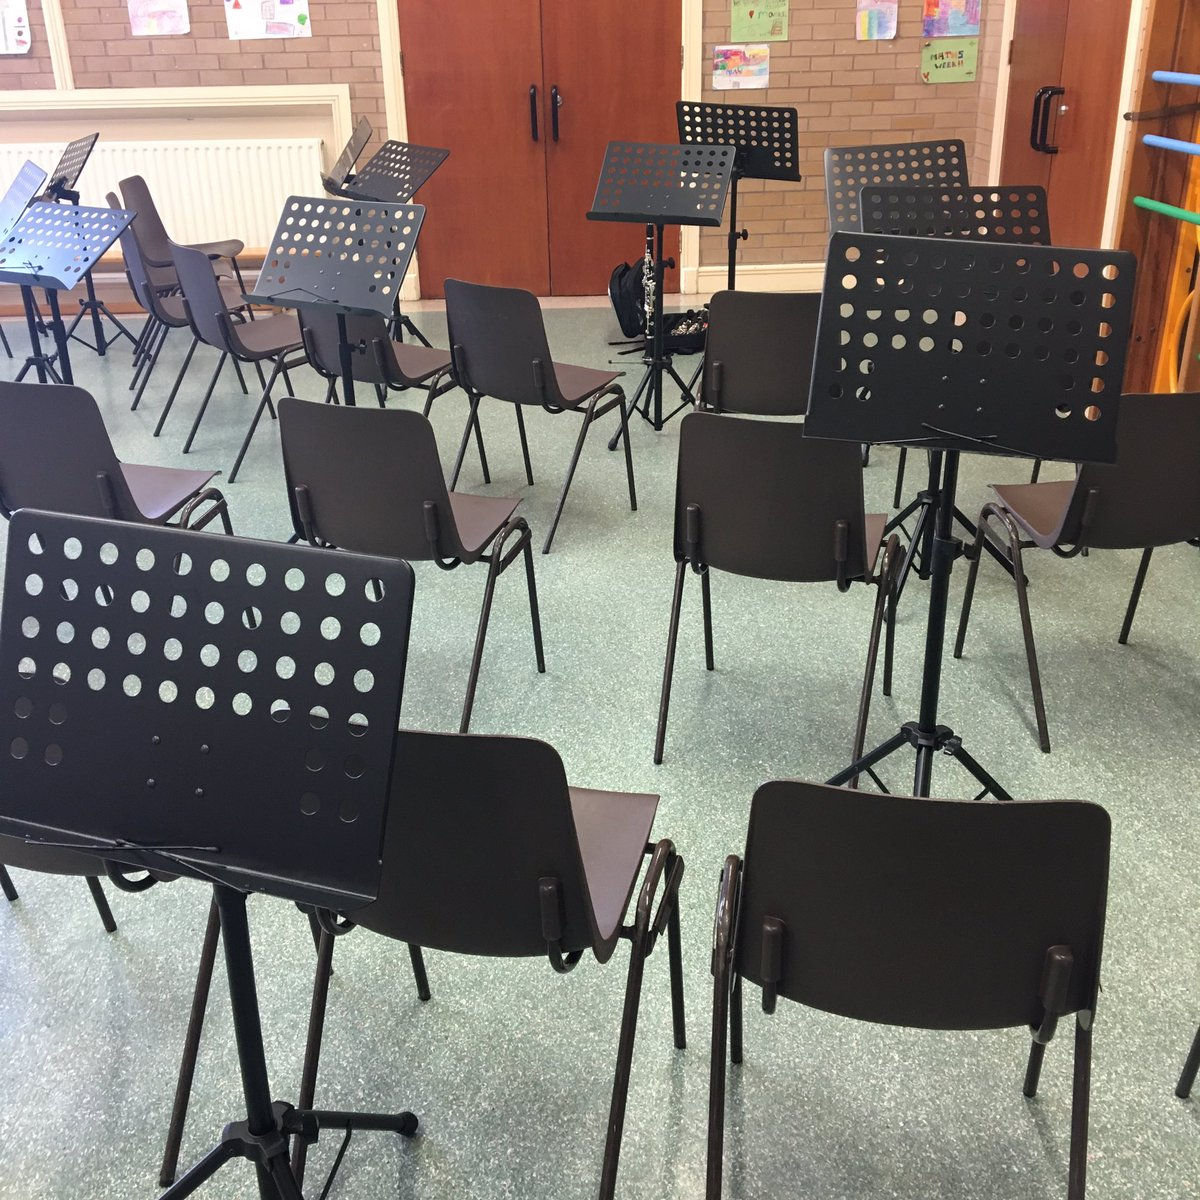 test Twitter Media - All set up for our first rehearsal with instruments! 🎶 #sharededucation #musiceducation #artsmatterni https://t.co/z7VLw86pY0